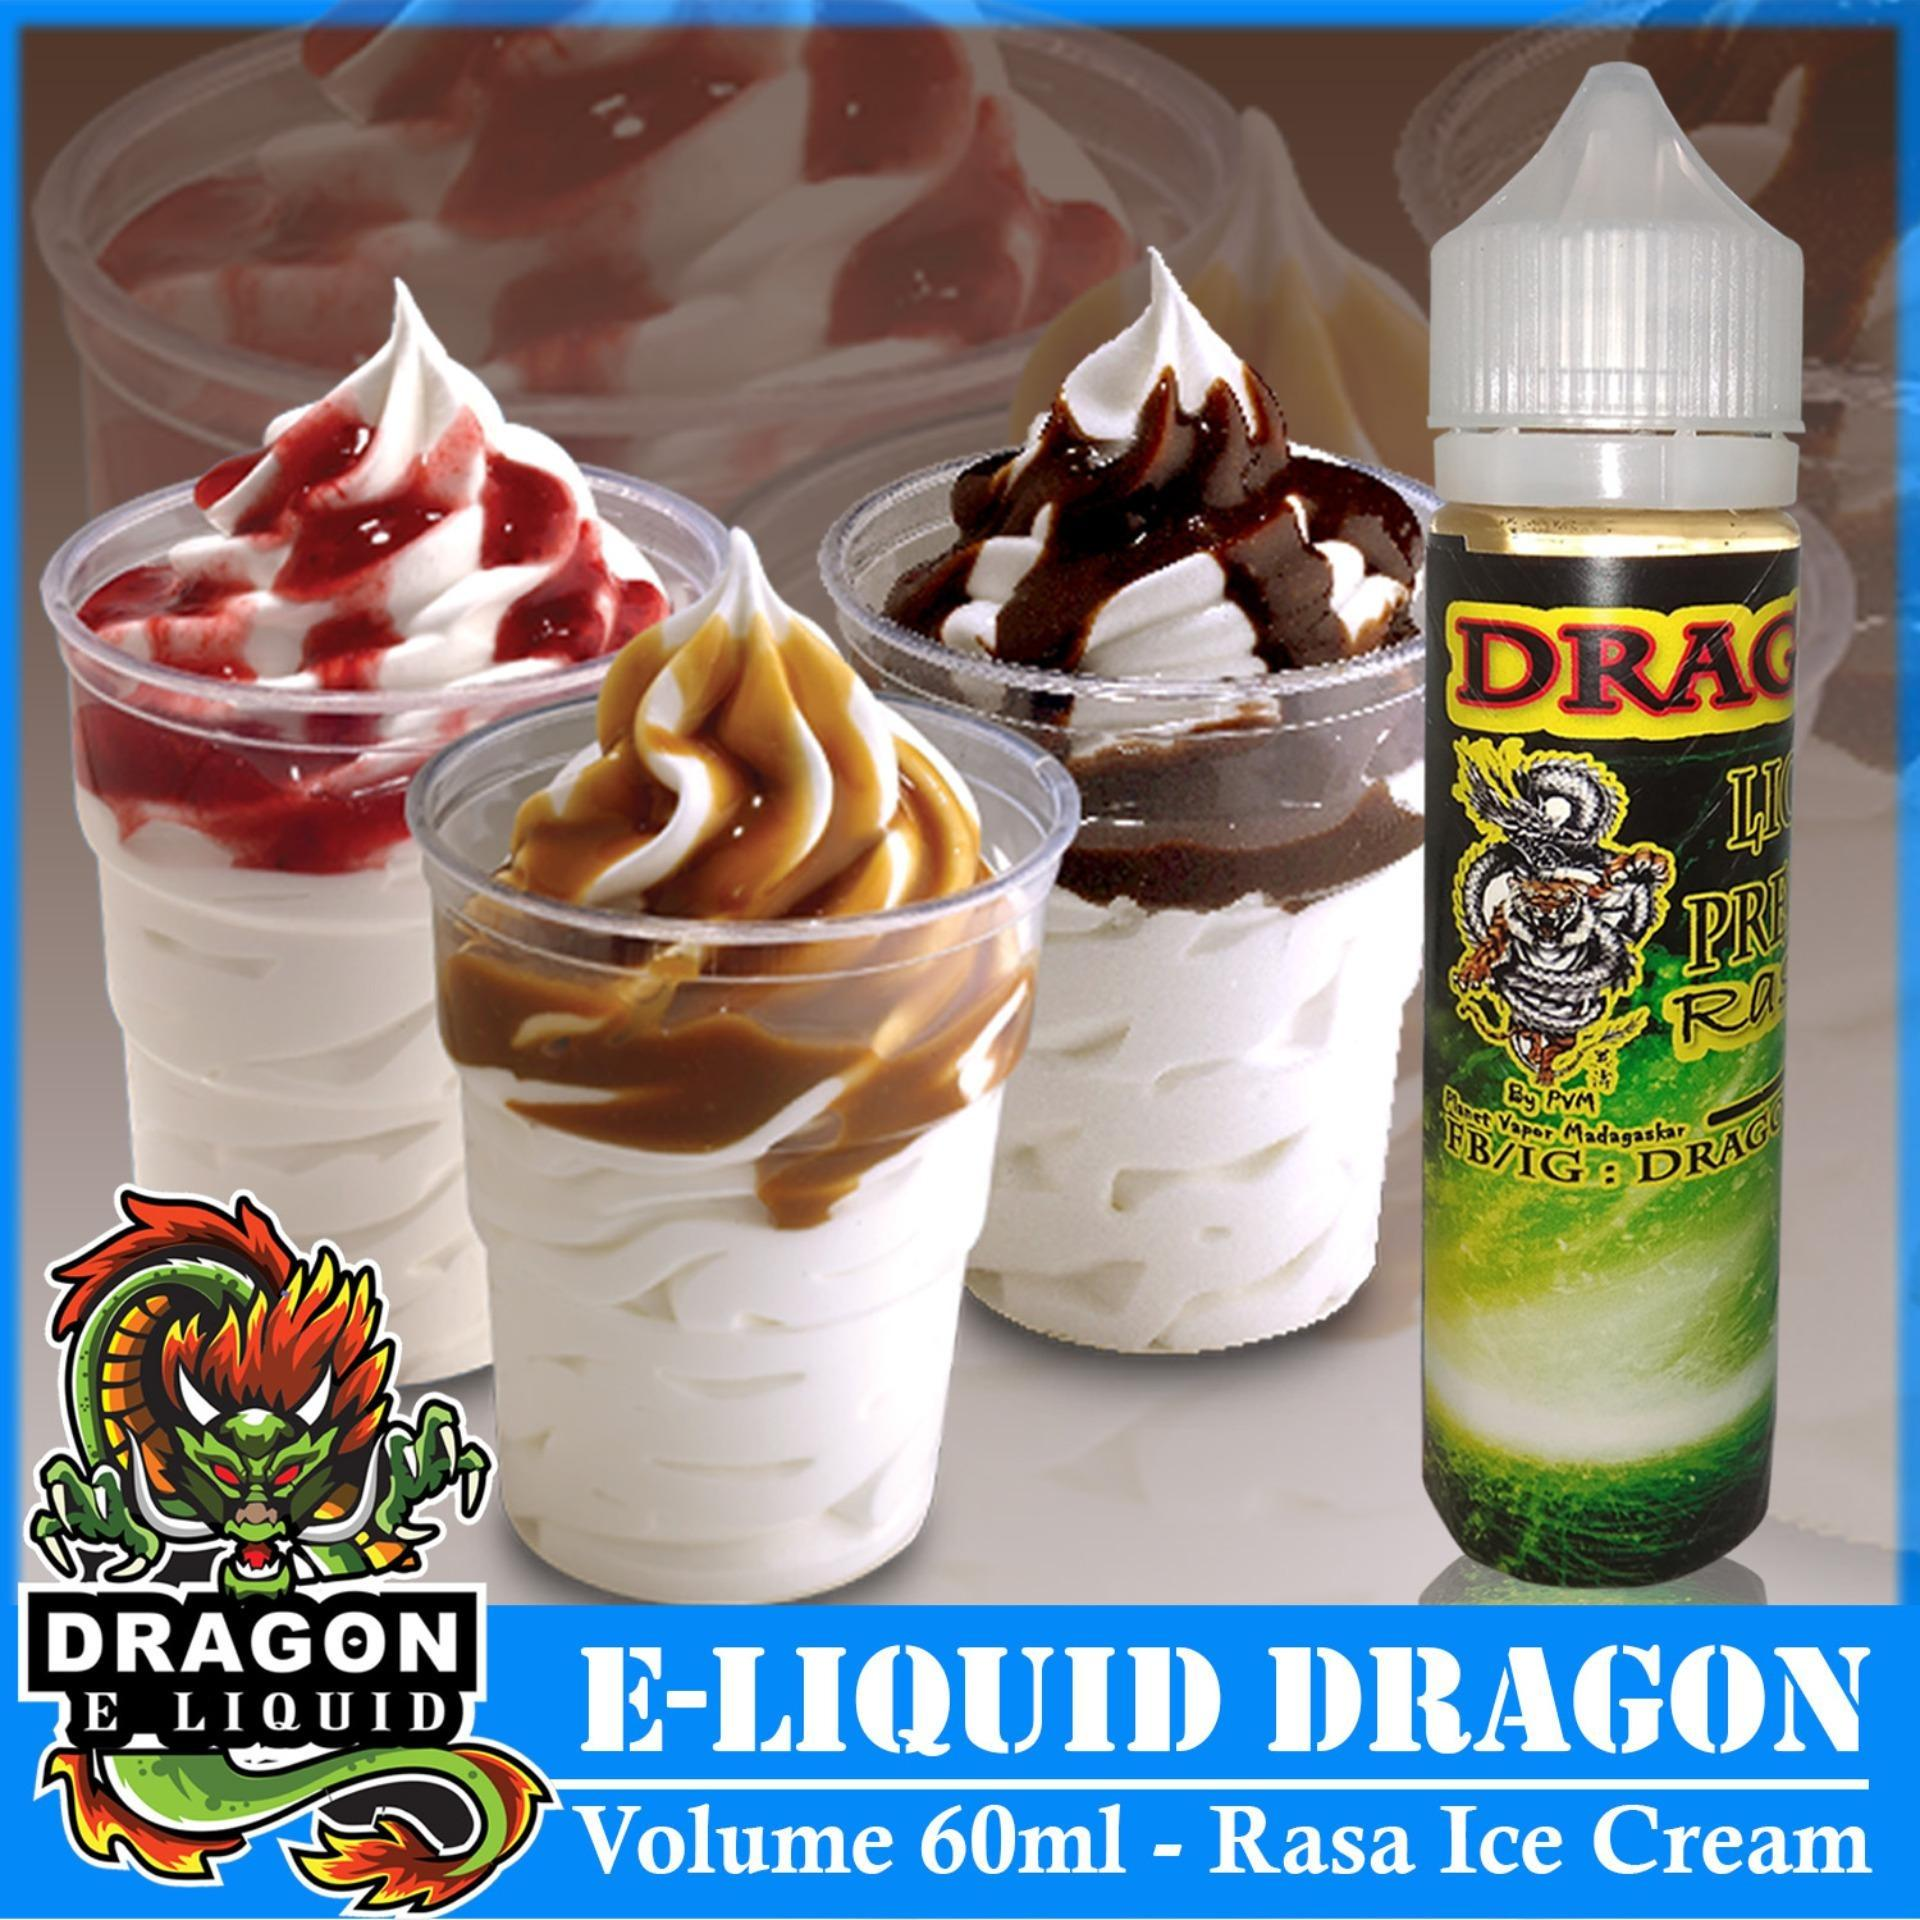 Liquid Tiger 100ml Rasa Ice Cream/Es Krim Free Liquid Dragon 5ml Rasa Random Vape Vapor & Rokok Elektrik